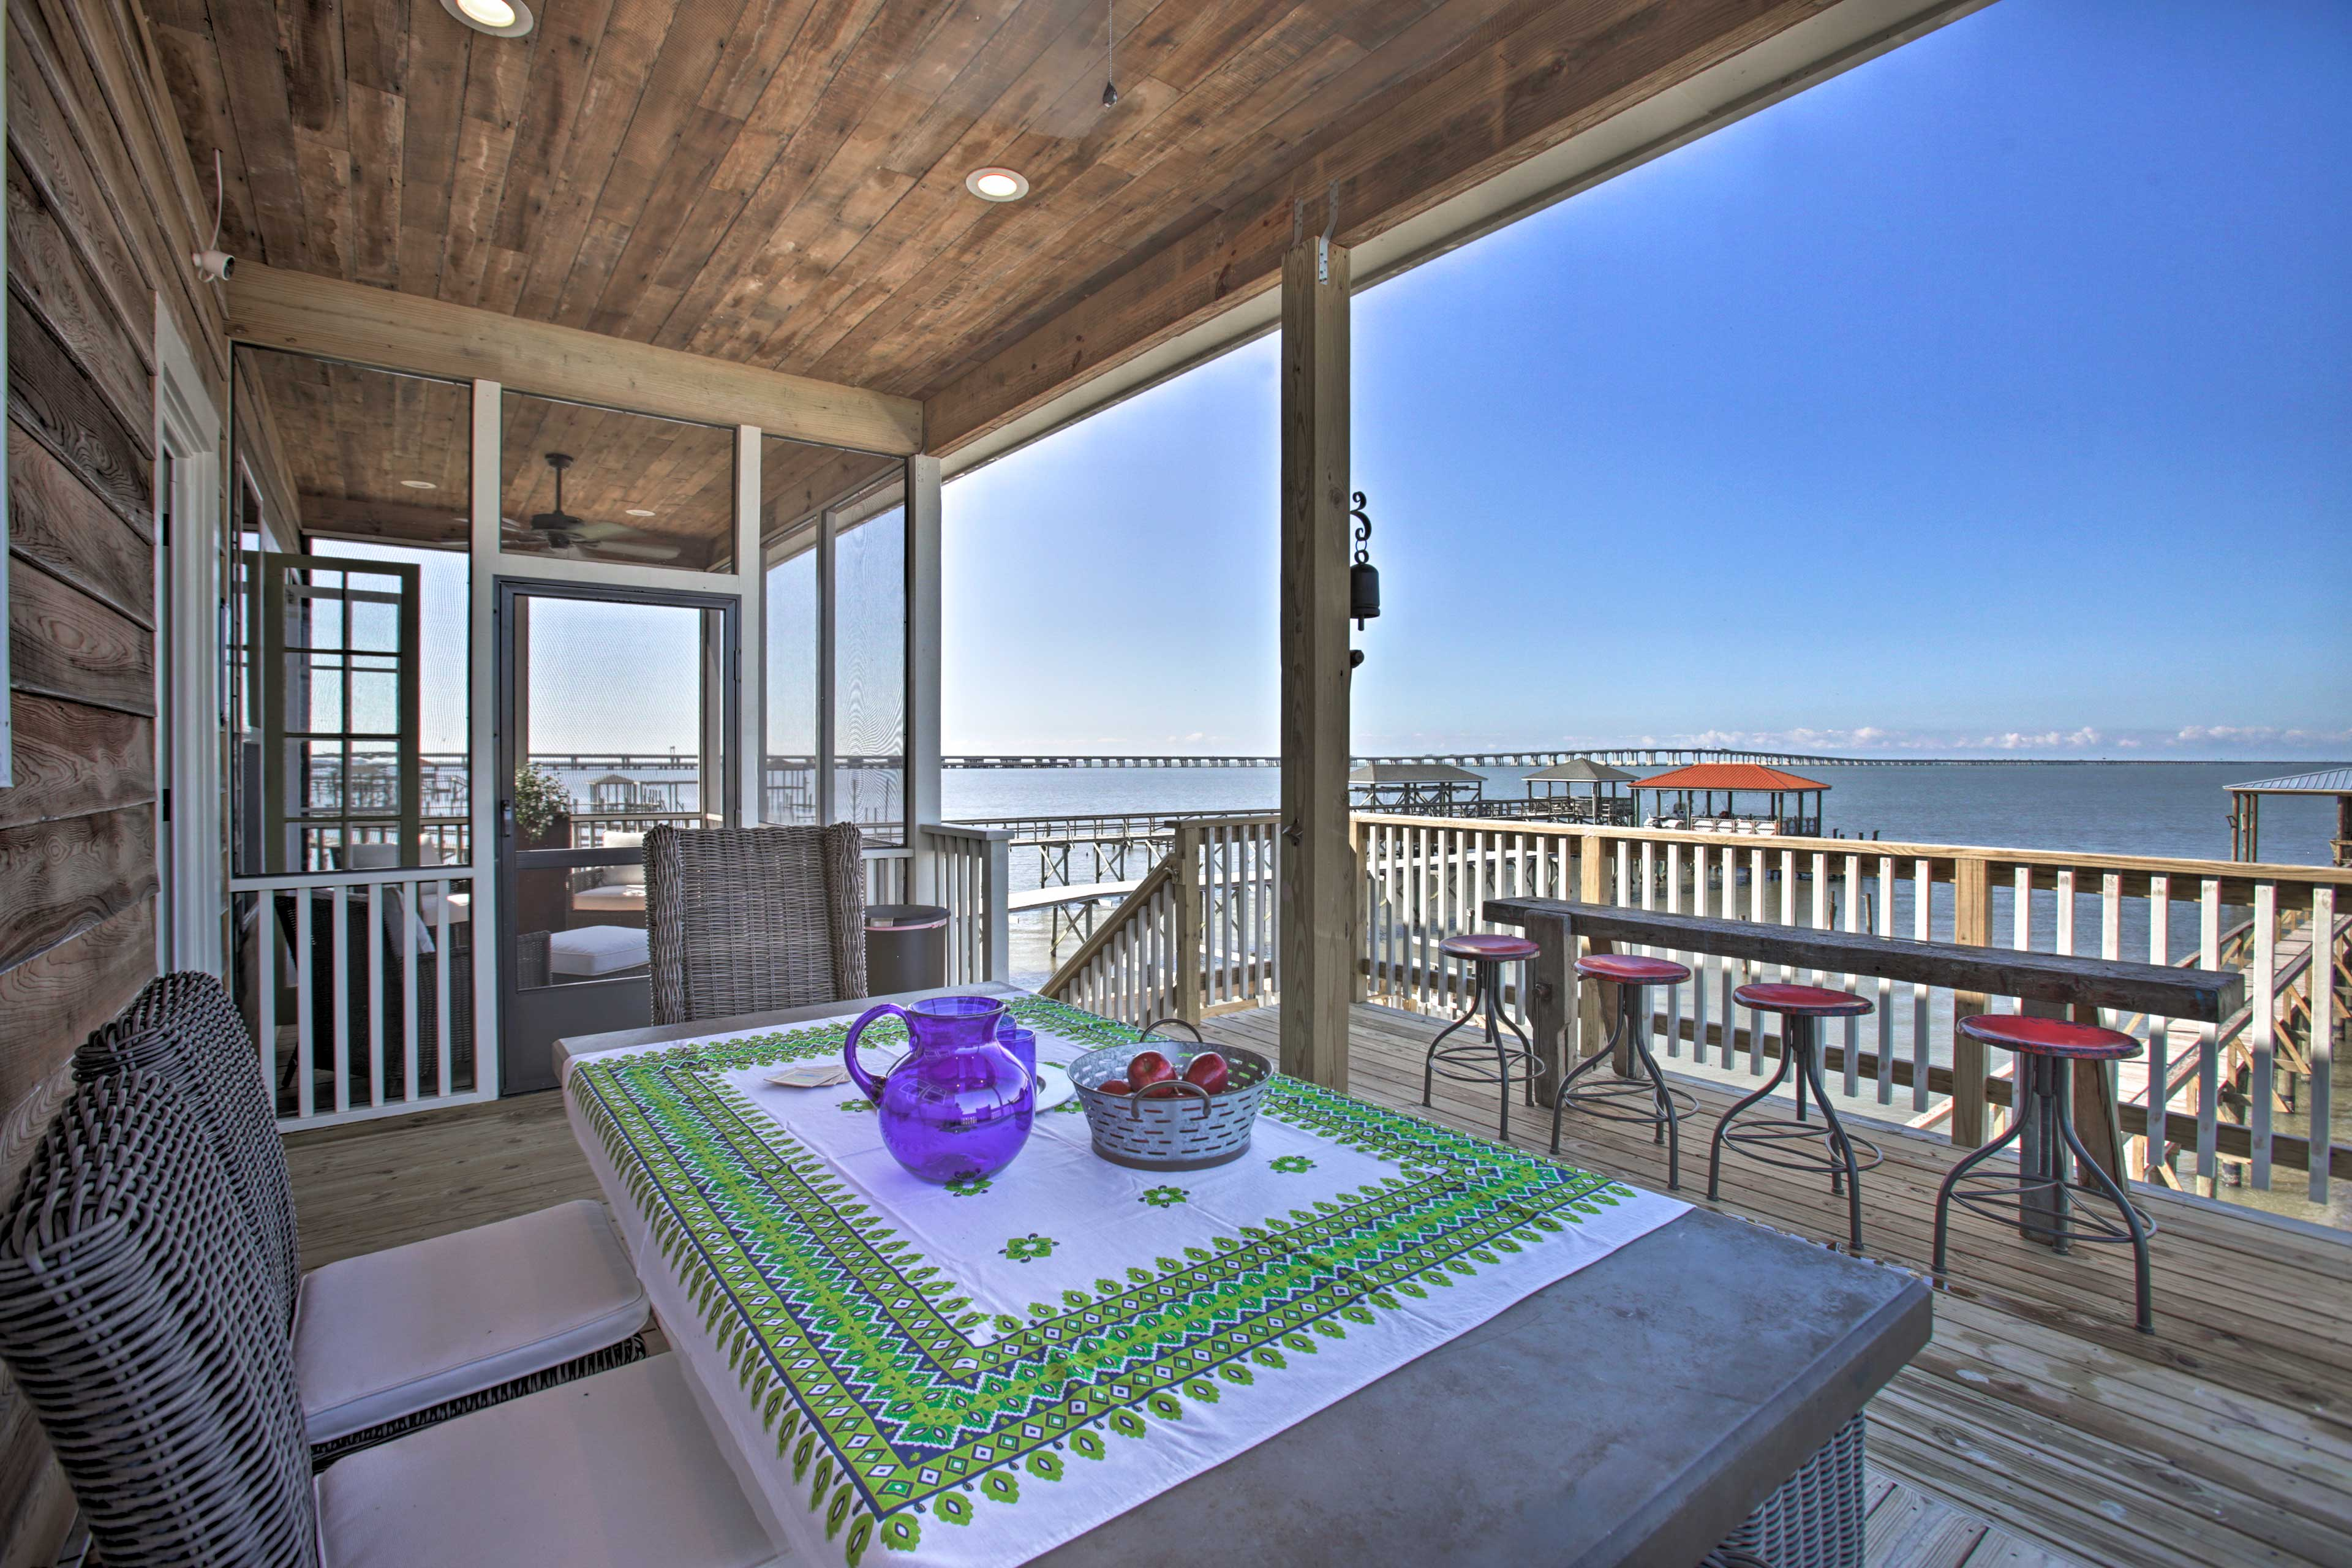 The 3-bedroom, 2-bathroom home boasts a private dock and panoramic views.